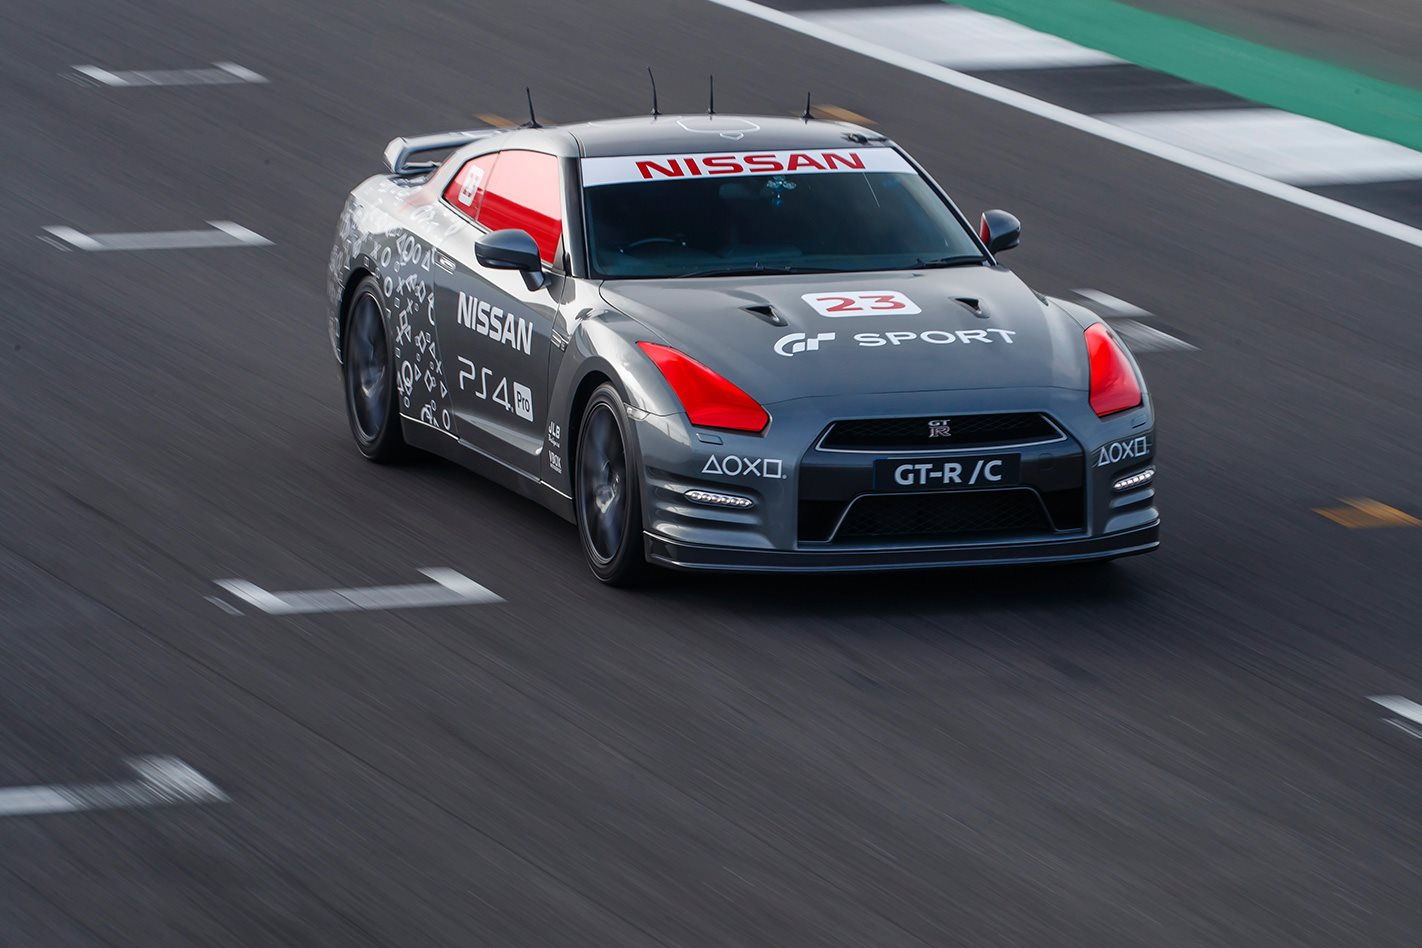 PS controller takes driverless Nissan GT-R to 131 miles per hour  around Silverstone class=